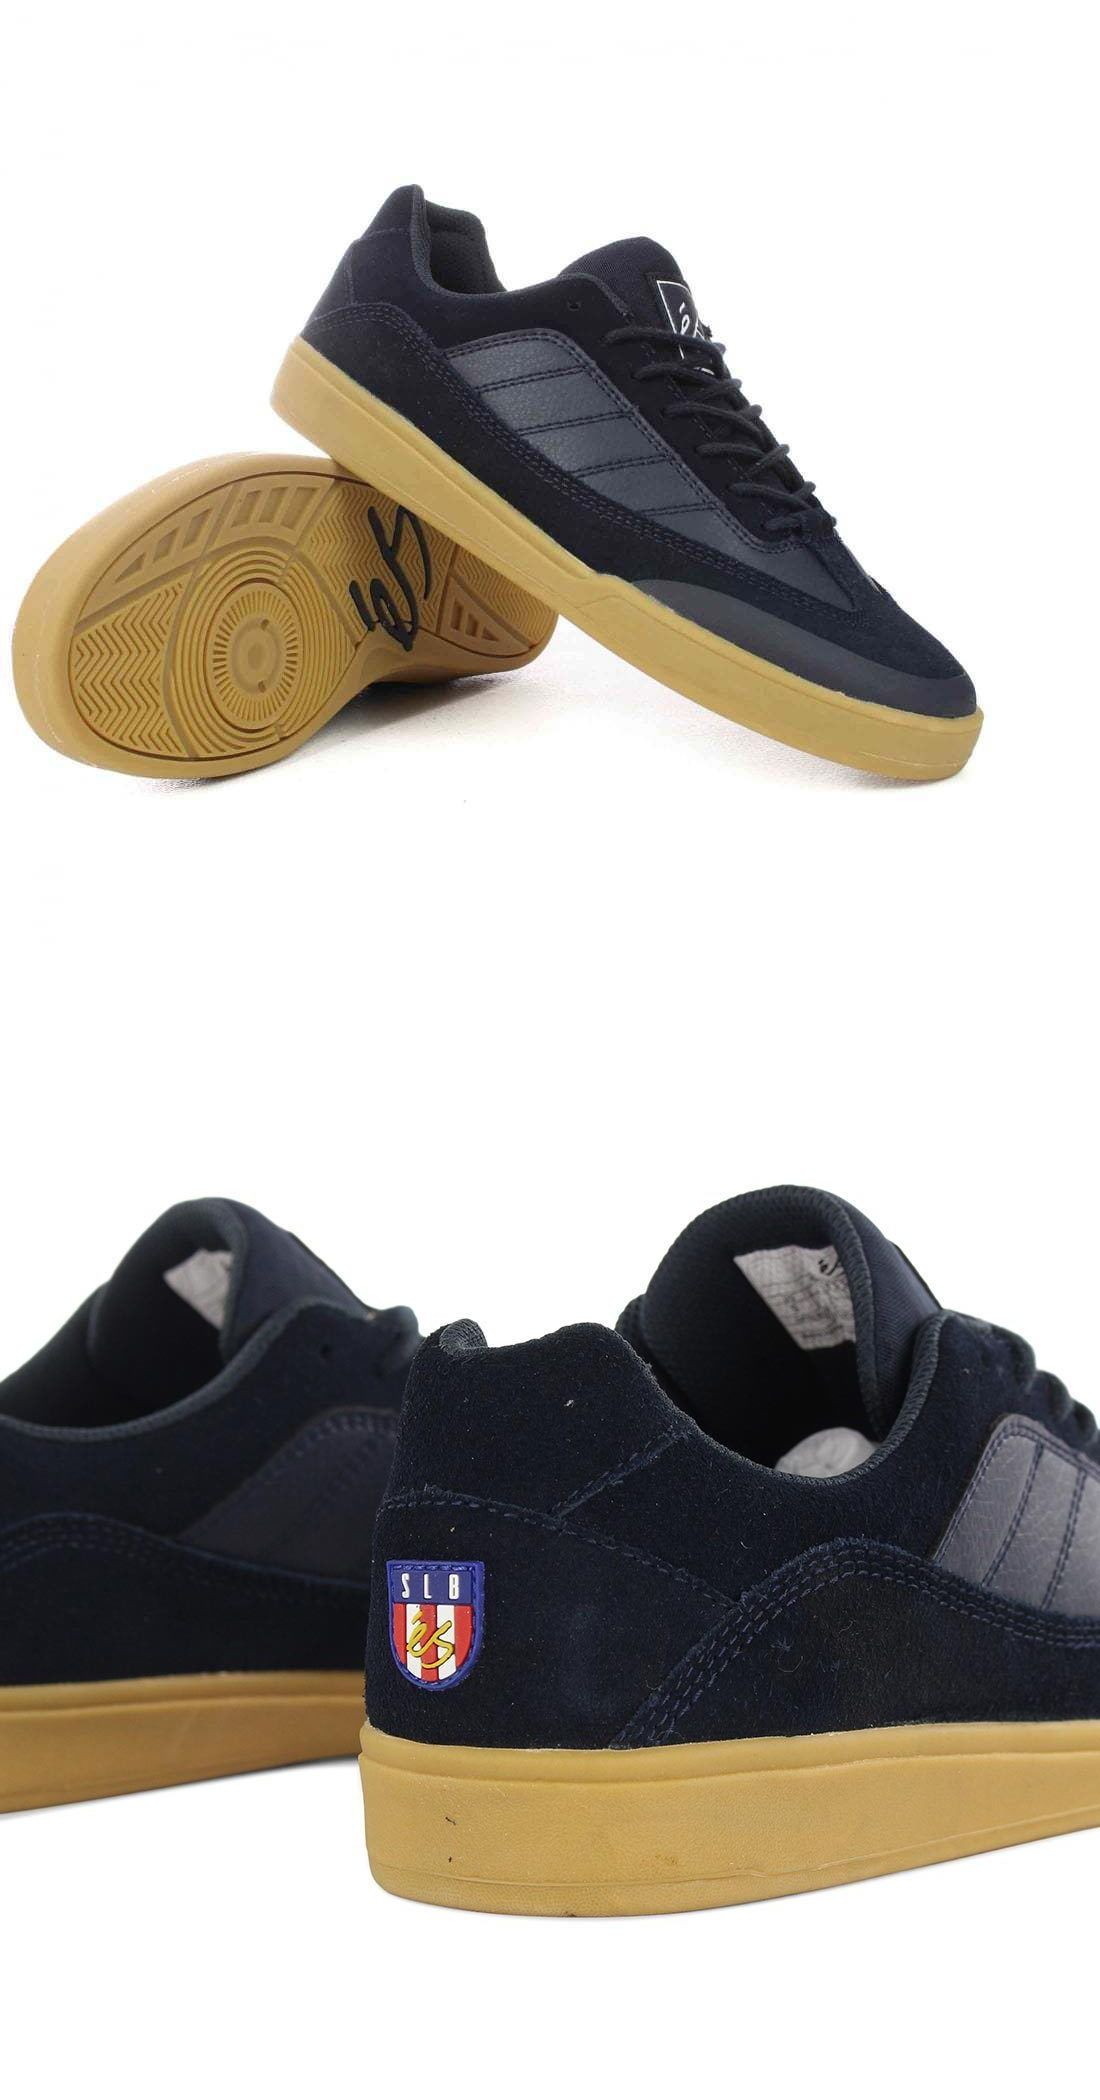 28d615ef04e2 Clothing Shoes and Accessories 159077  New - Es Slb 97 Skateboard Shoes.  Navy Gum. Sal Barbier Sizes 9 Thru 12 -  BUY IT NOW ONLY   59 on eBay!